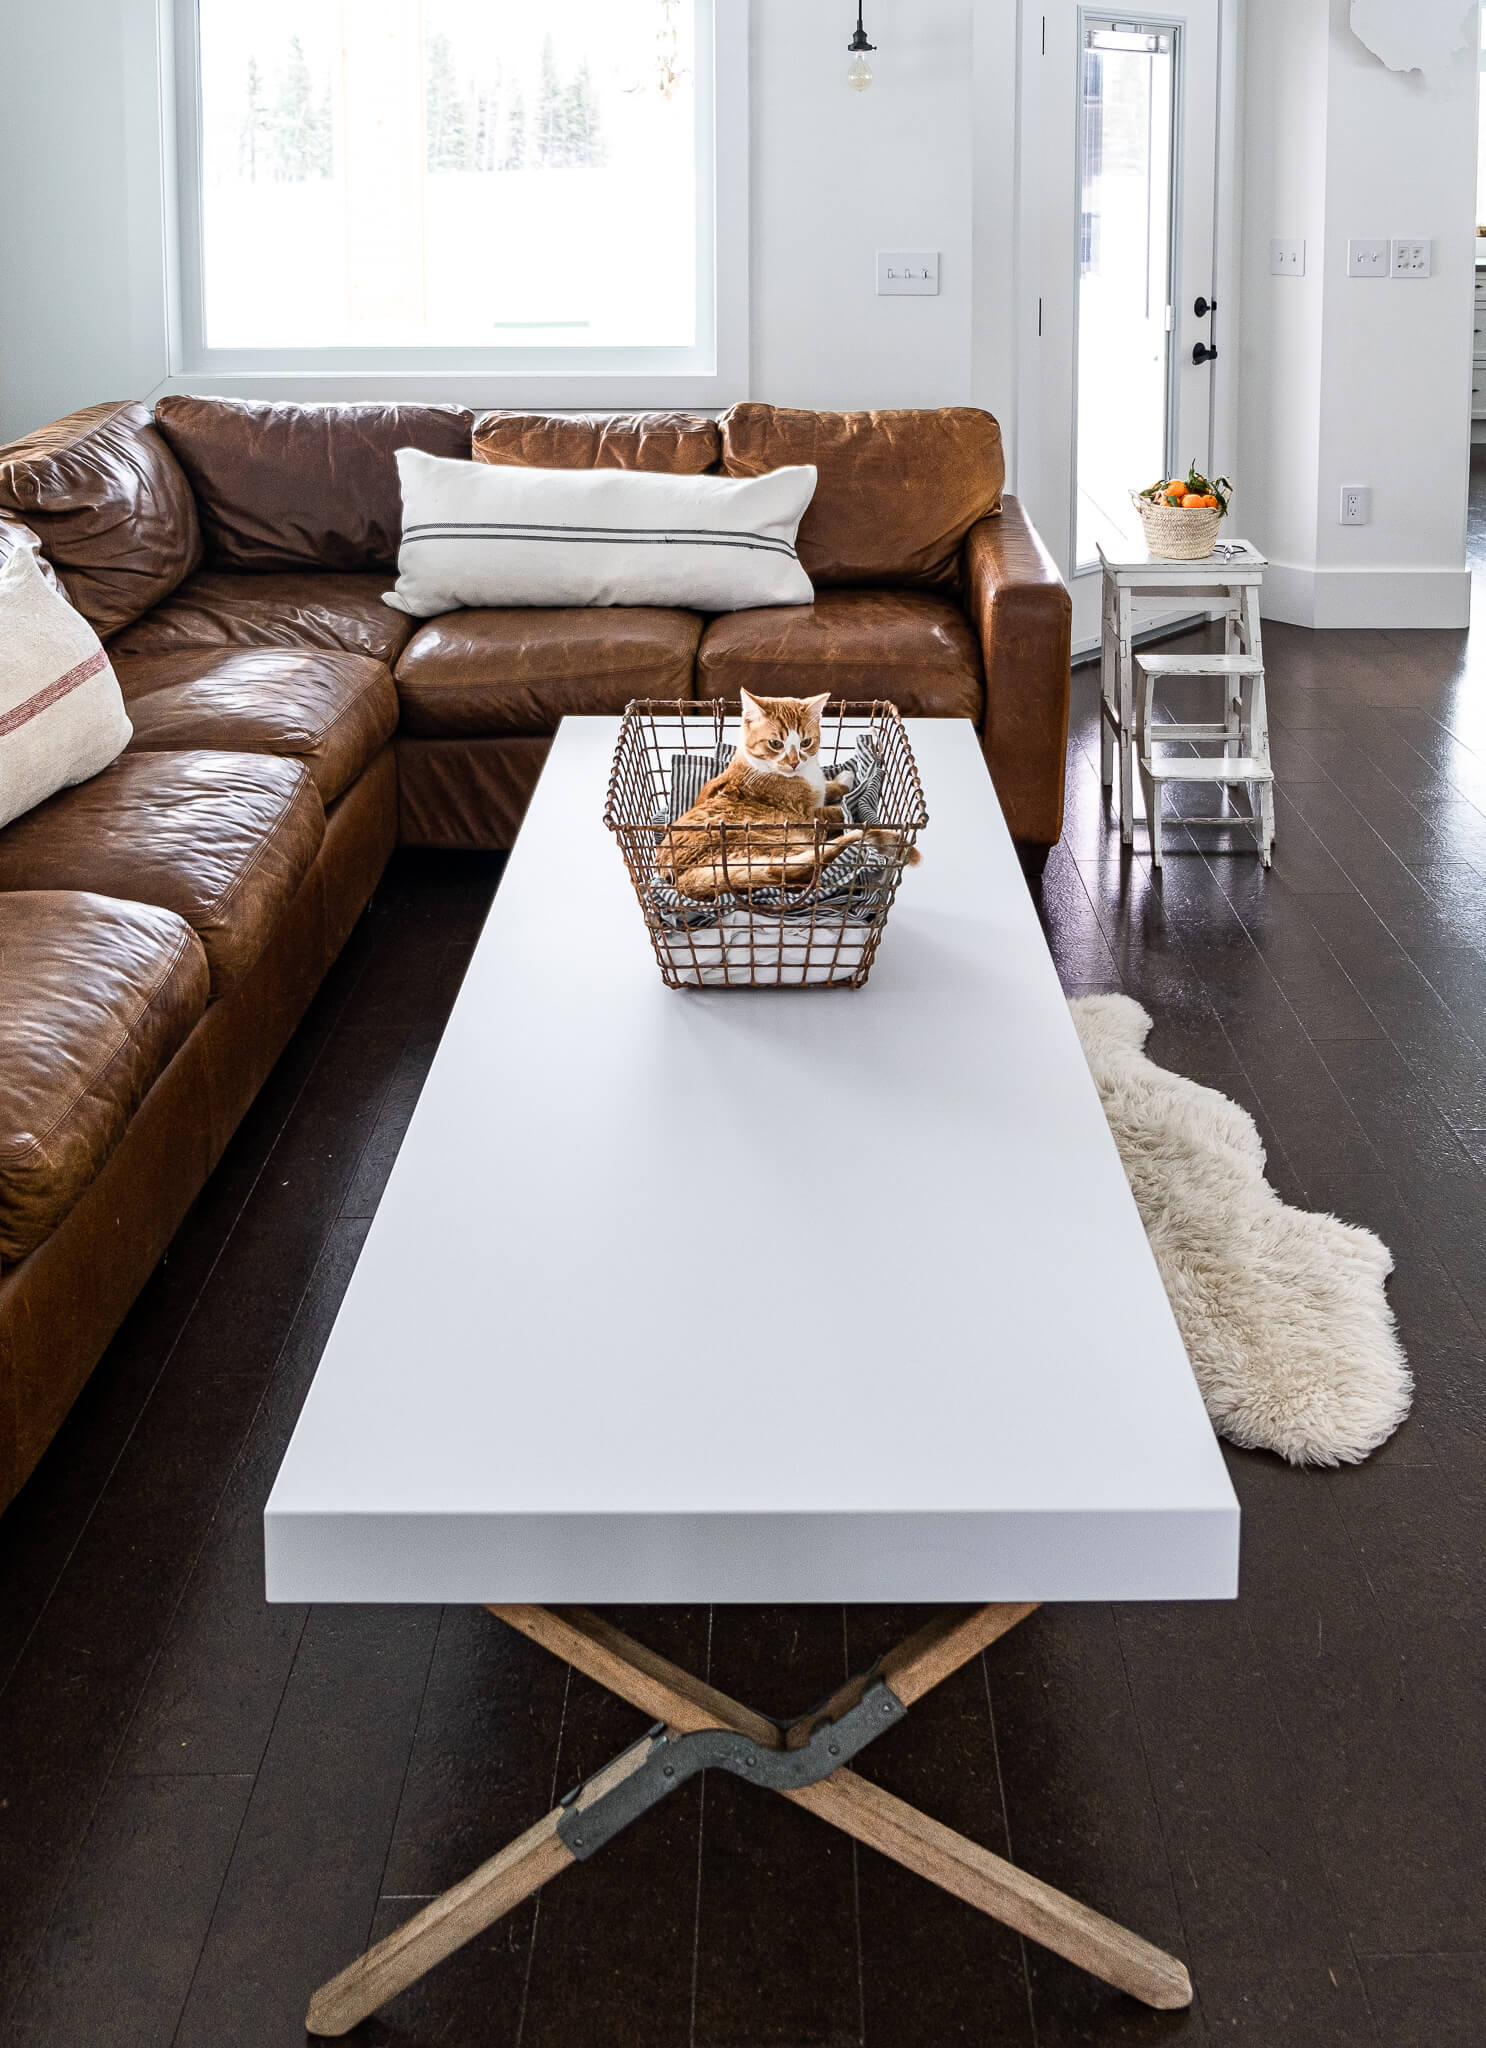 Quartz top wire baskets with cat napping as coffee table decor